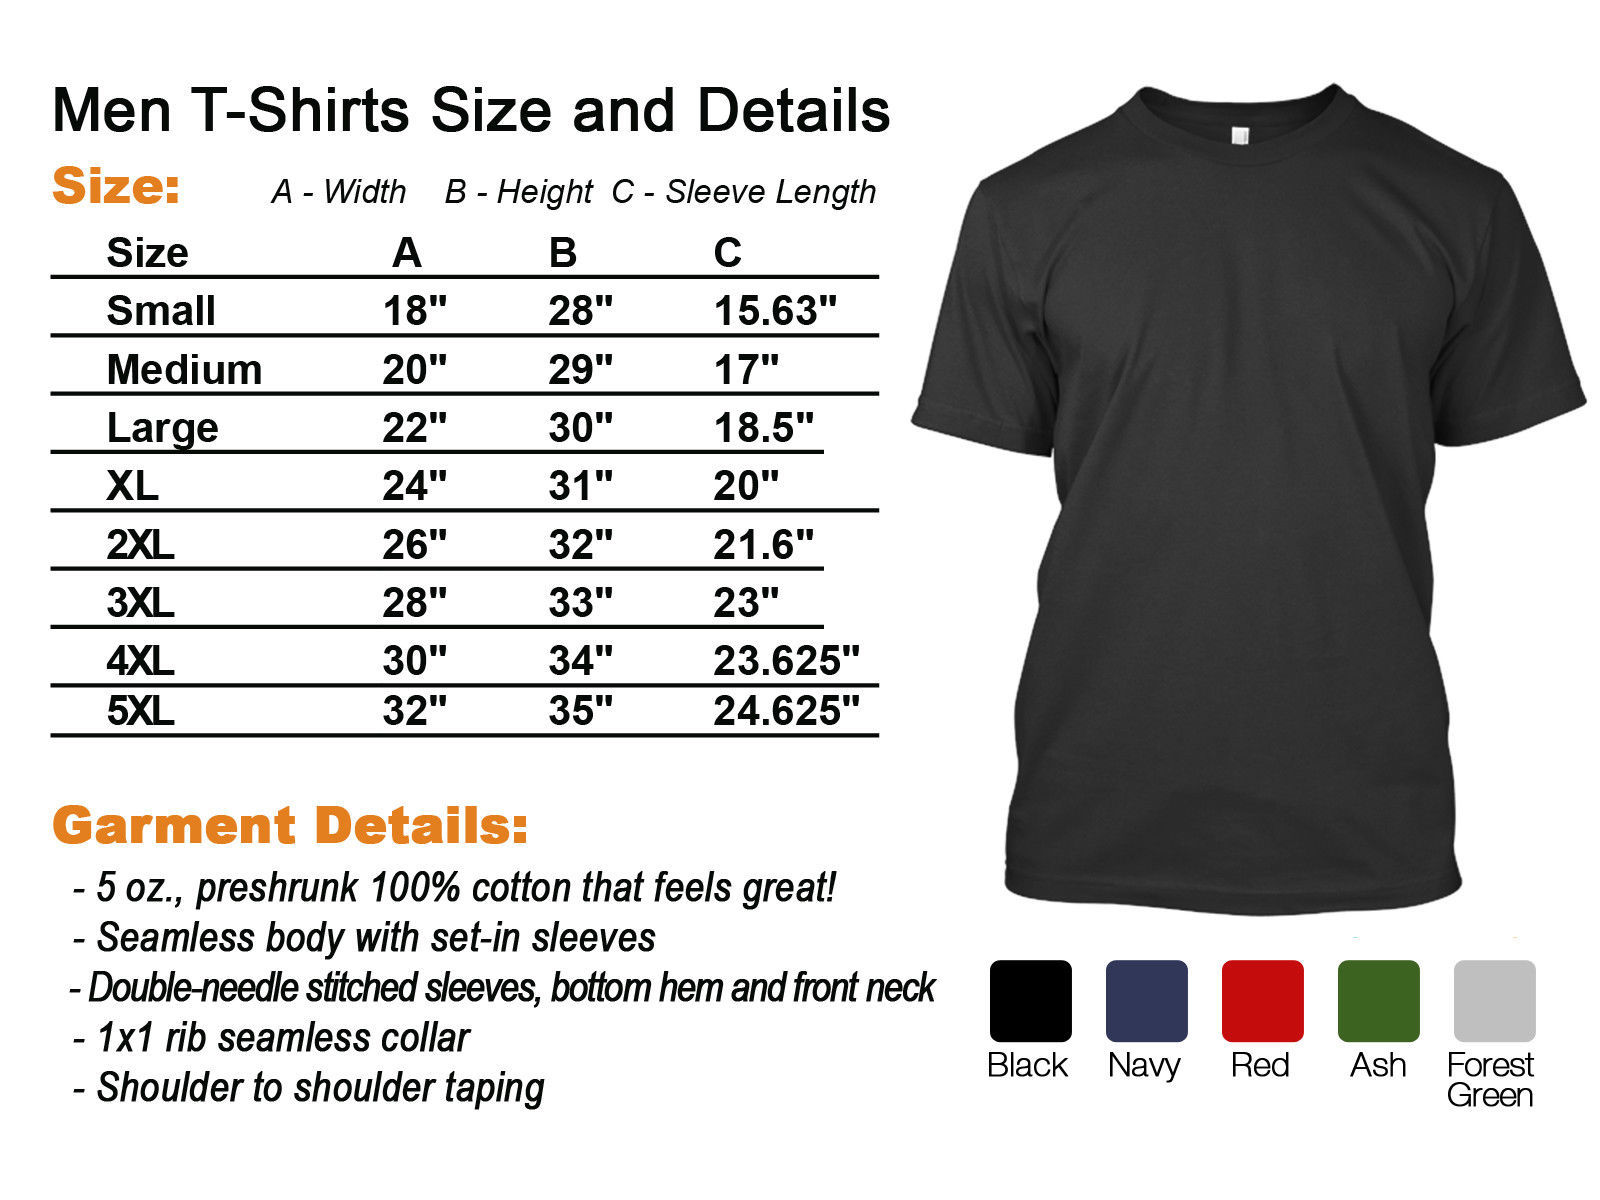 ca2c8844 Beard Nutrition Facts T-shirt Best Funny Novelty Gift for Husband Dad  Grandpa